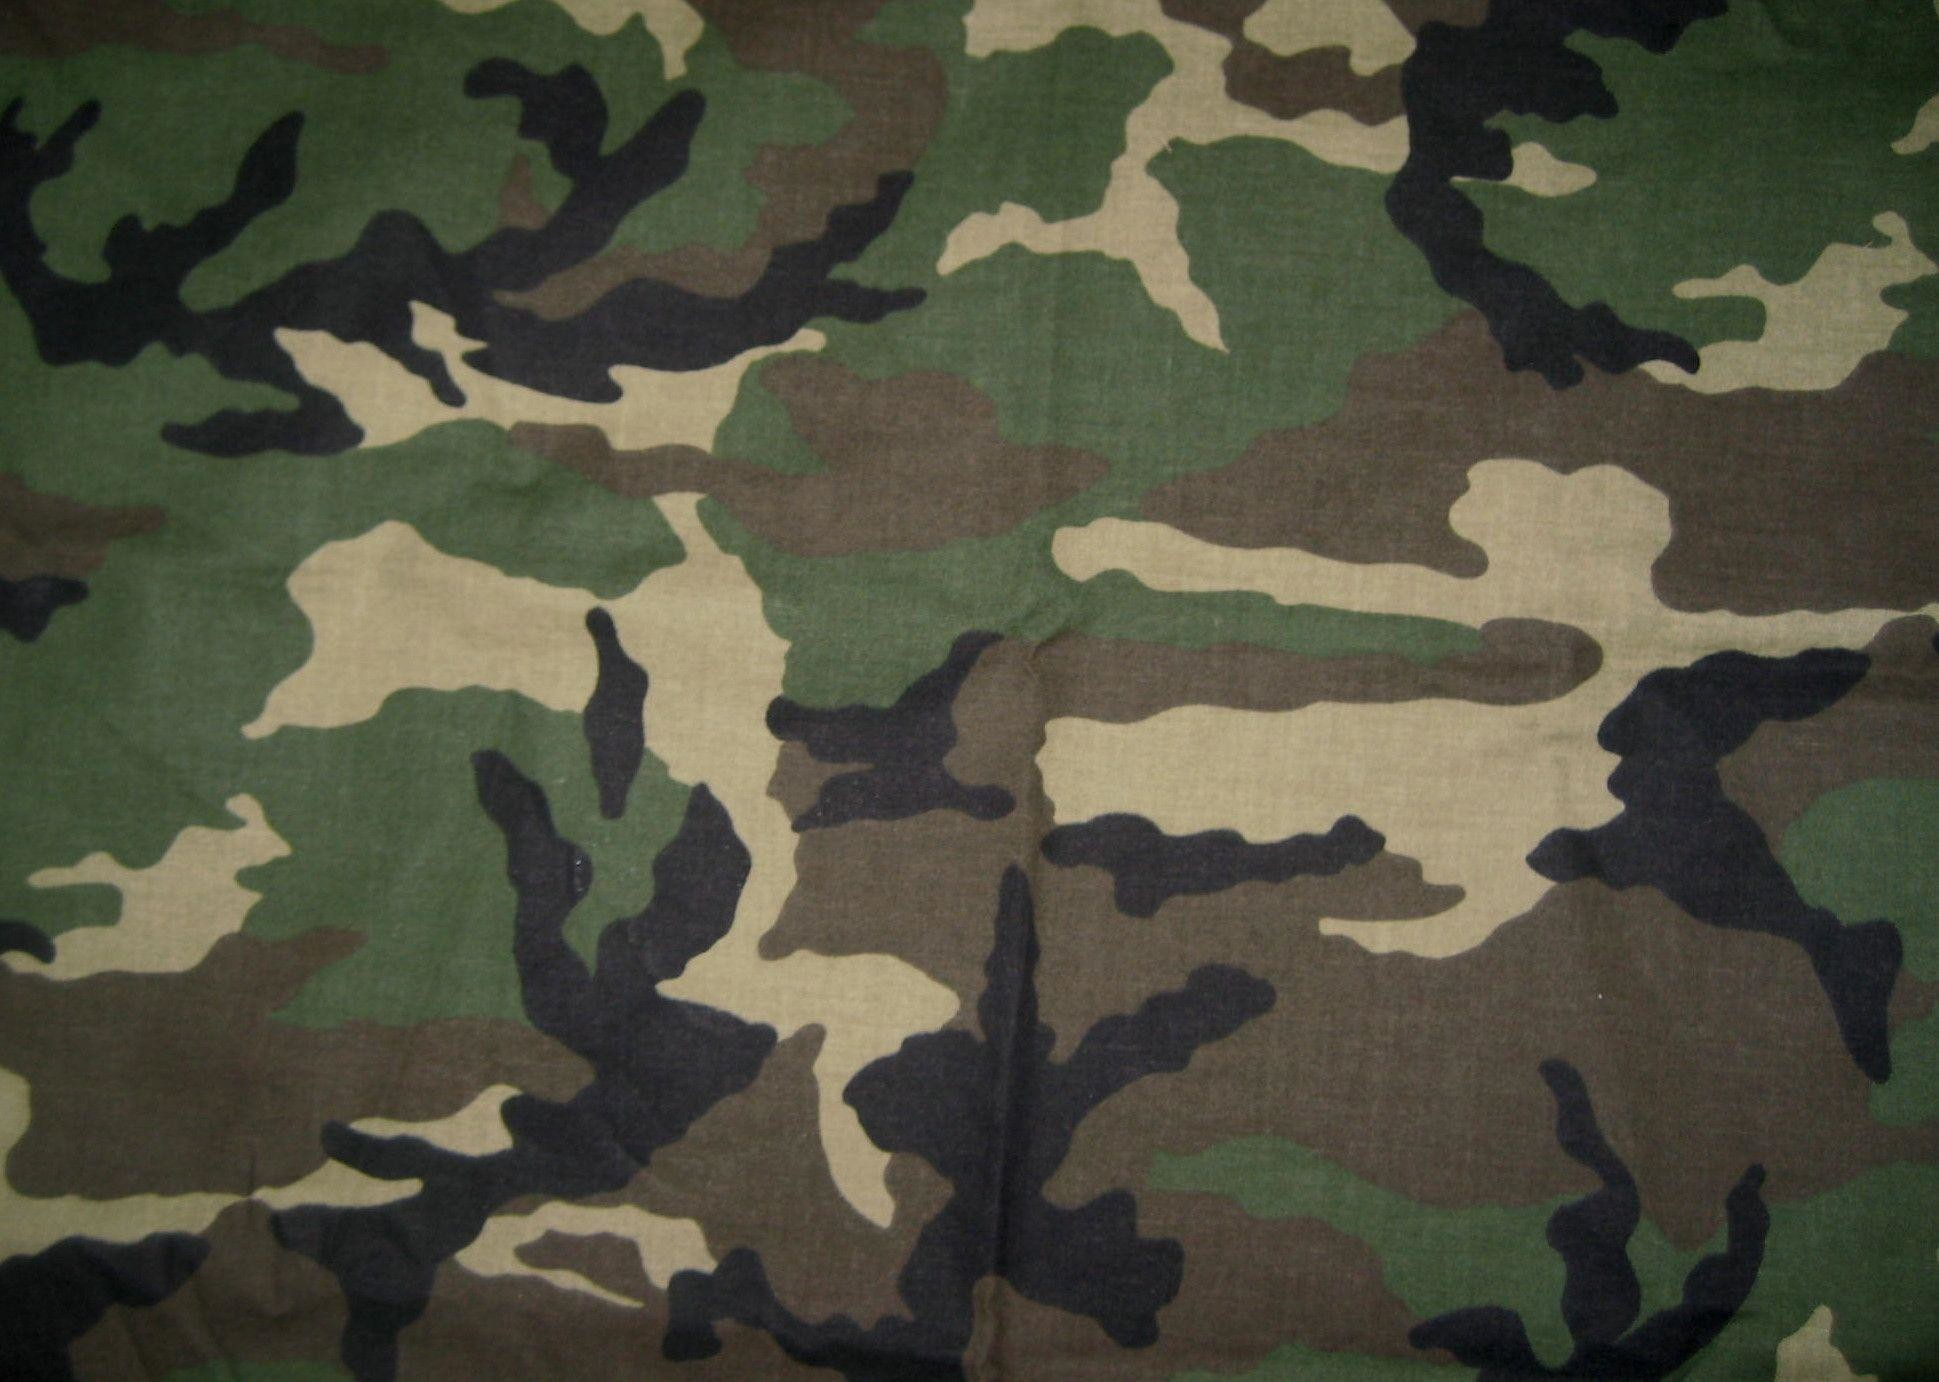 Army Camo Wallpaper (57+ images)